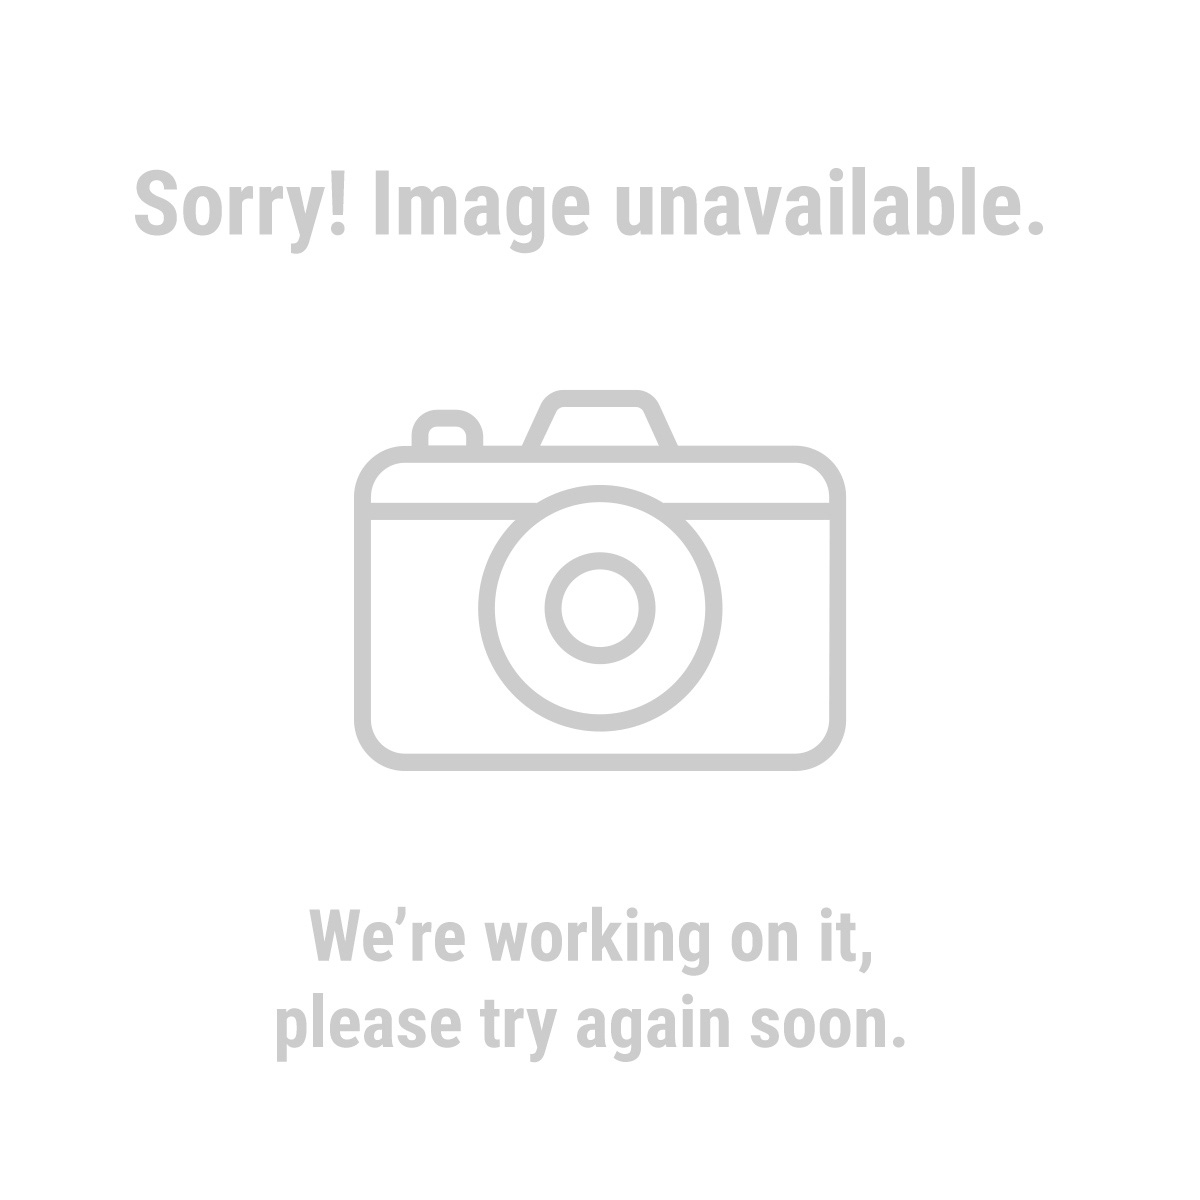 Pittsburgh Automotive 62767 440 lb. Electric Hoist with Remote Control